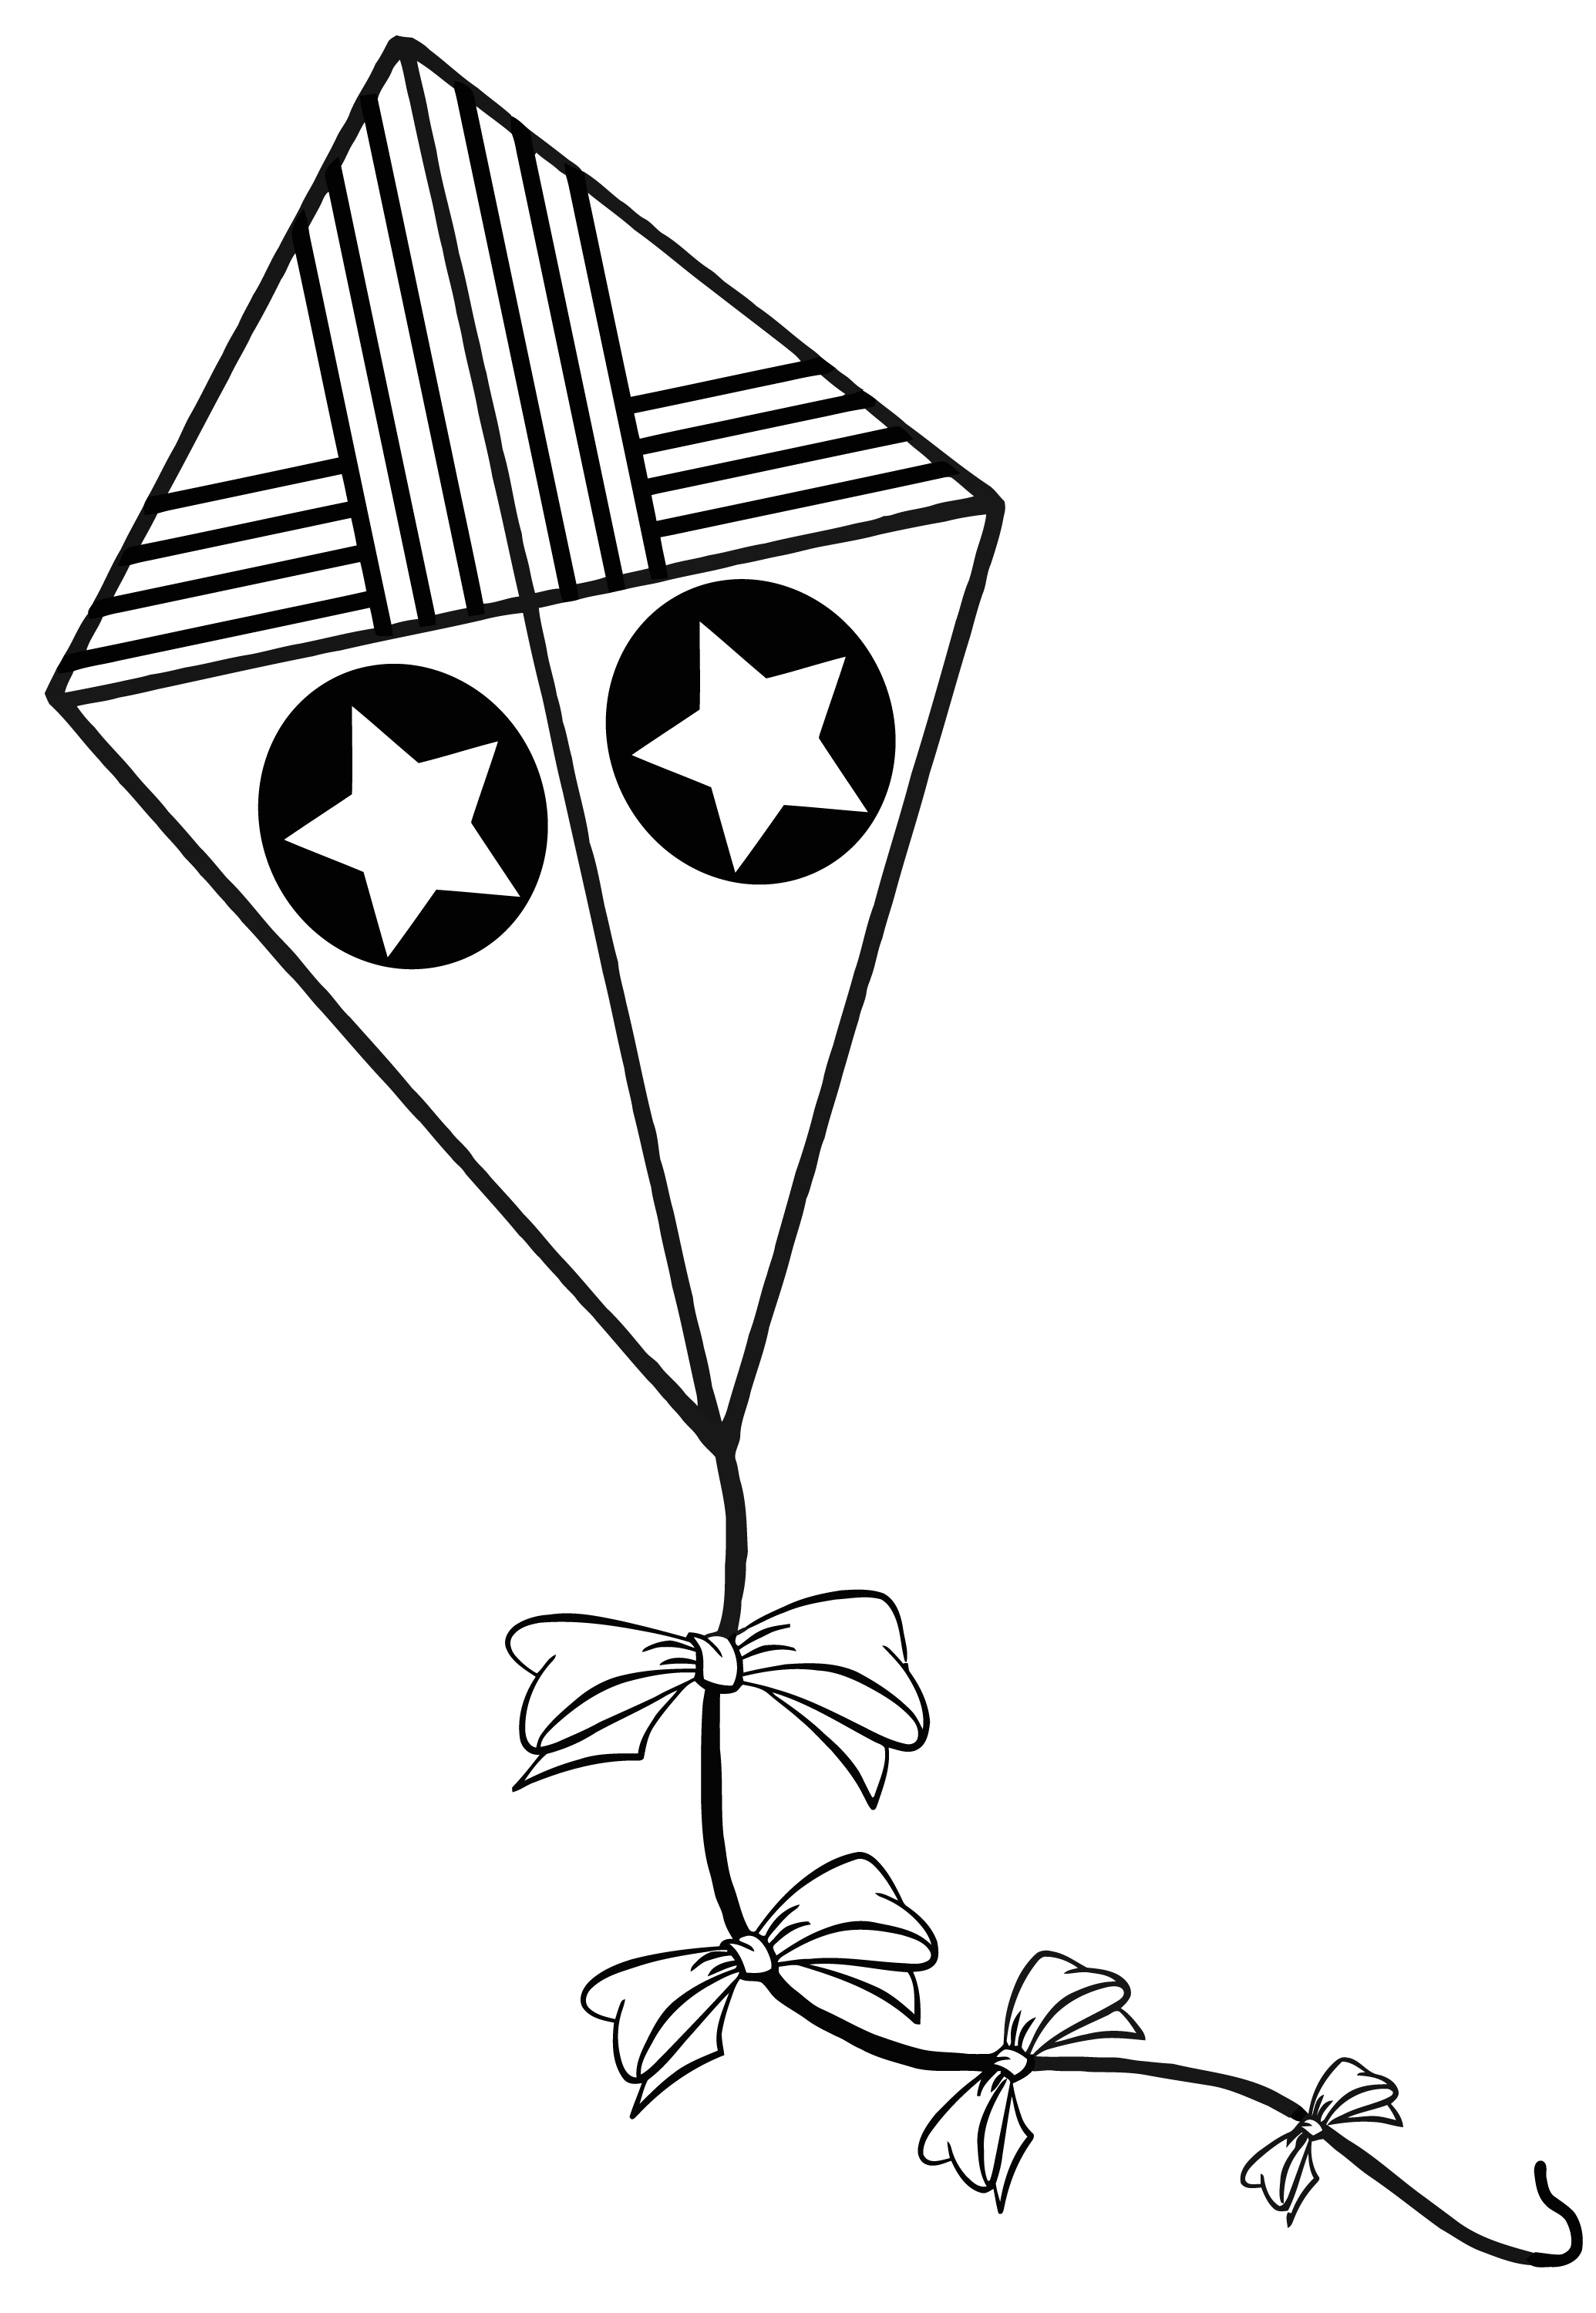 Coloring Pages : Colorings Pencil Printable Kite Drawing At - Free Printable Pencil Drawings